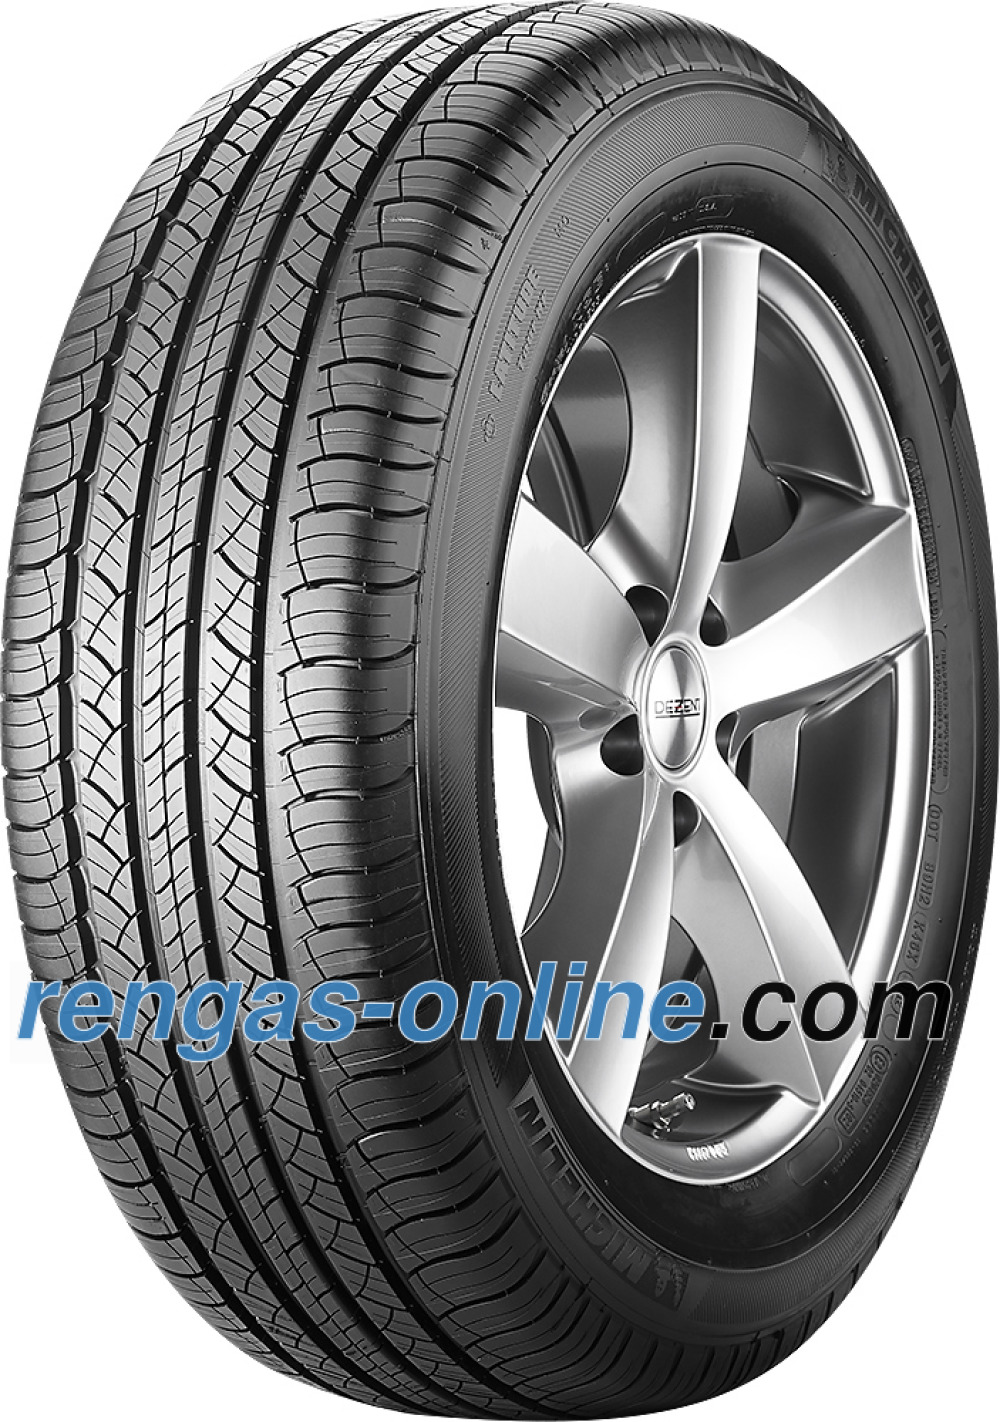 michelin-latitude-tour-hp-23565-r17-108v-xl